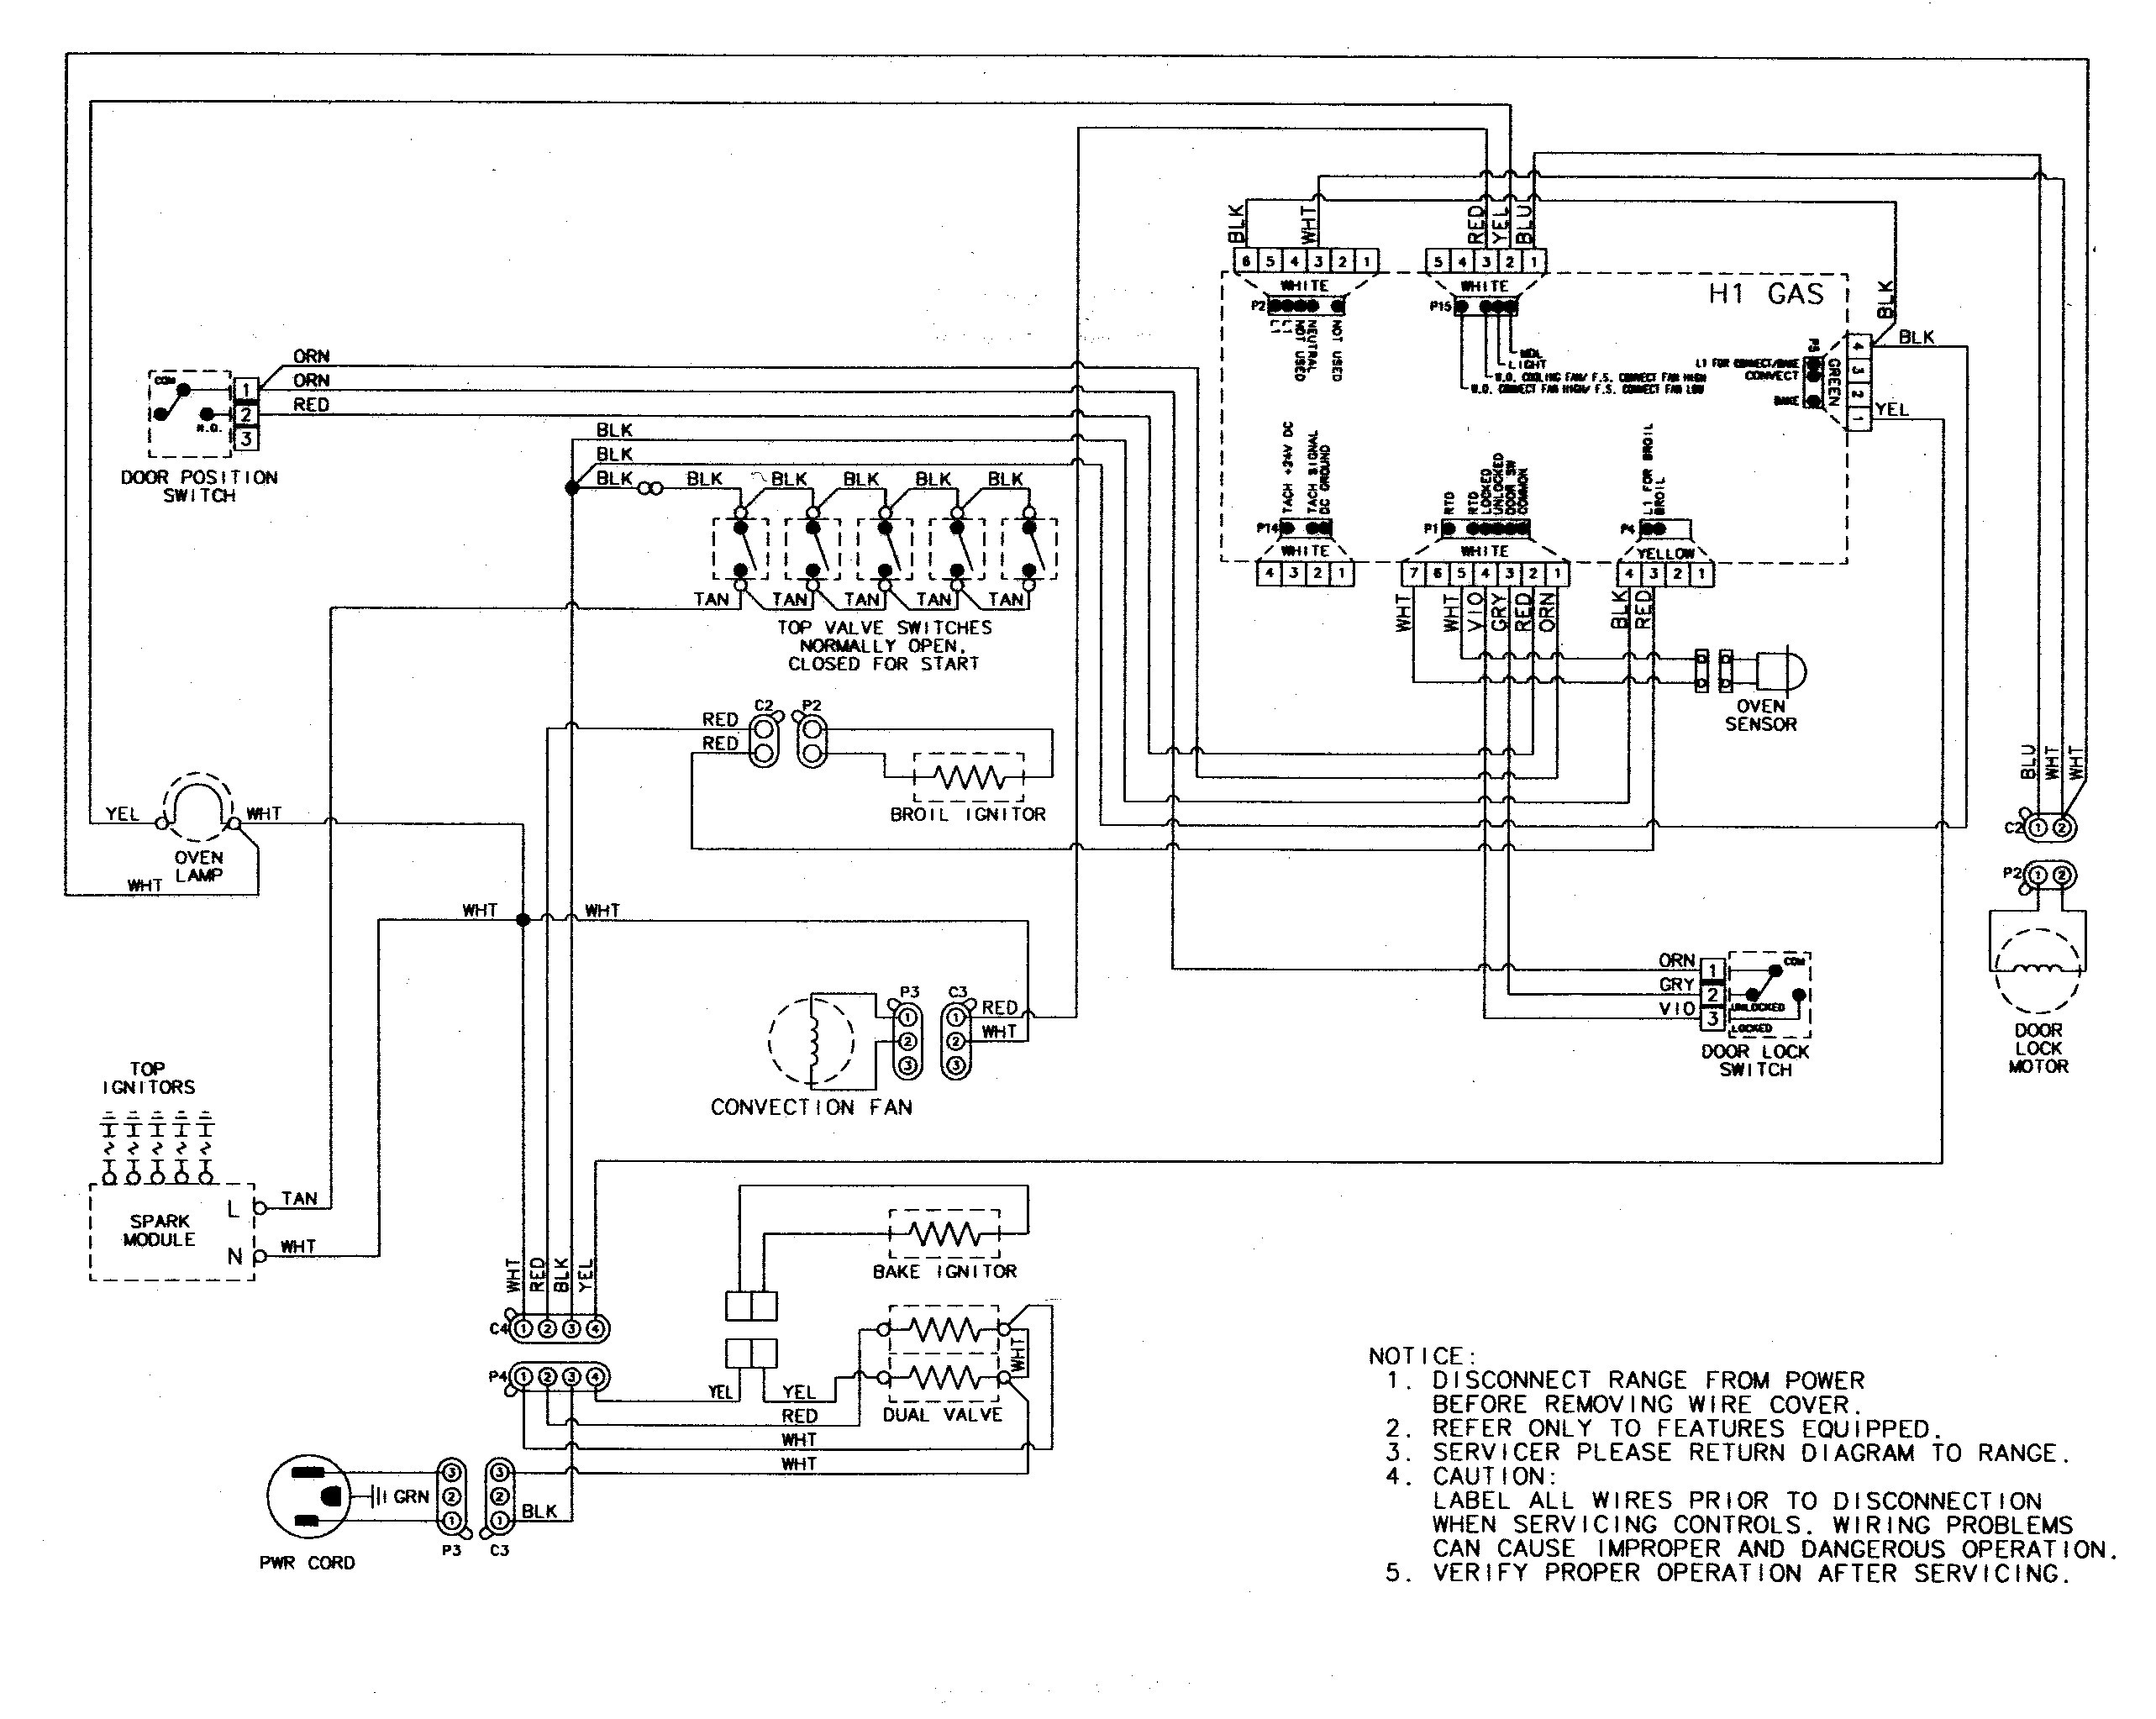 dryer timer wiring diagram free download wiring diagram schematicge electric dryer timer switch wiring diagram wiring diagramge electric dryer timer switch wiring diagram